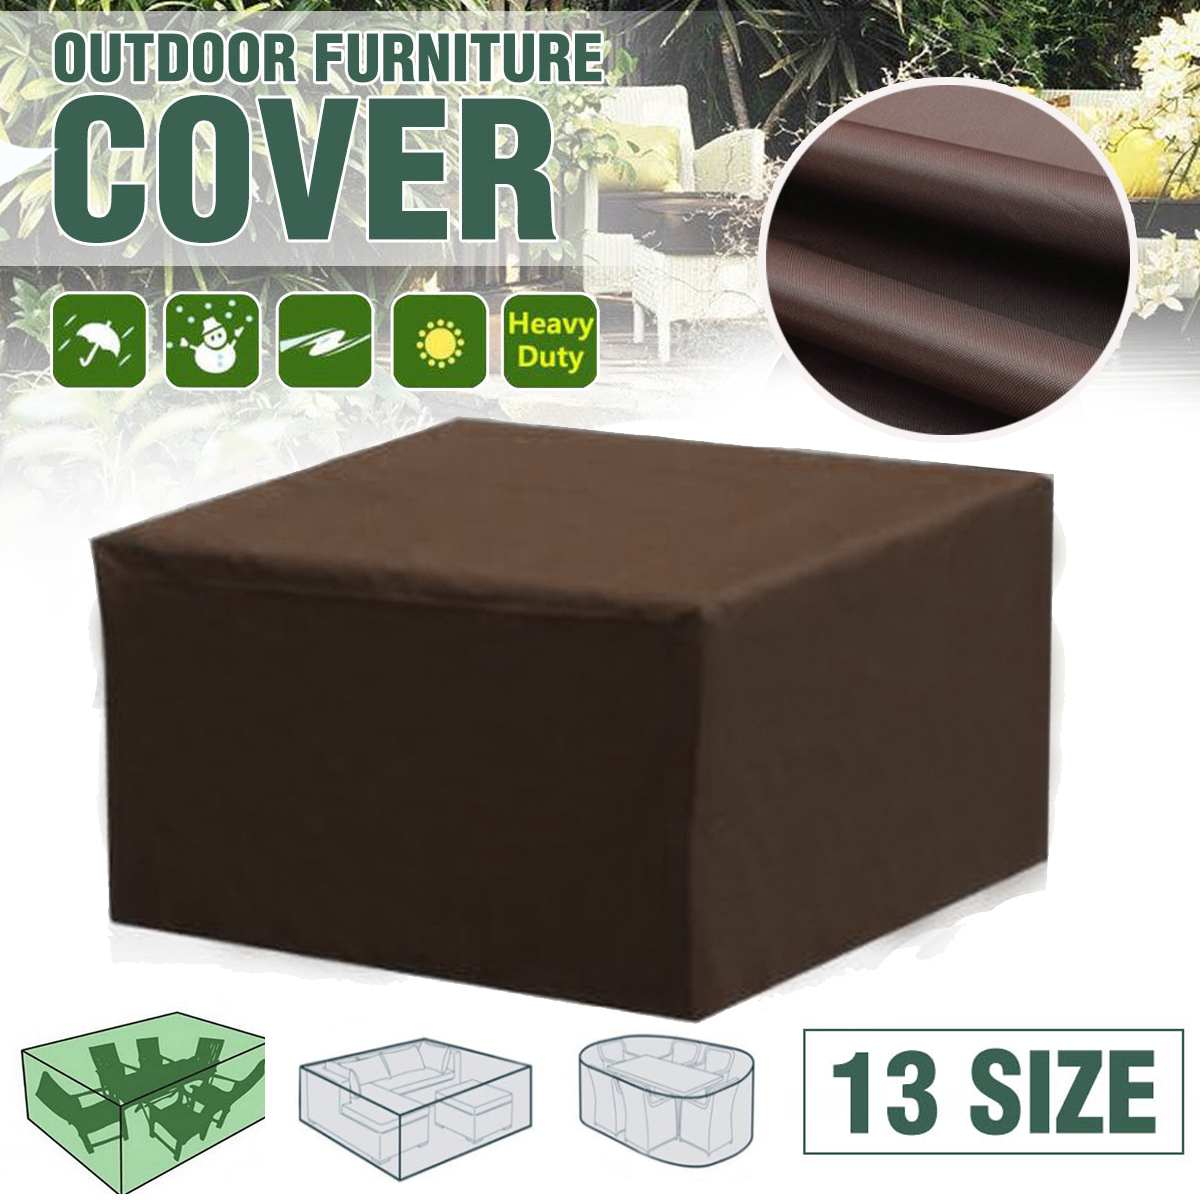 Us 9 97 43 Off Waterproof Outdoor Garden Furniture Cover Covers For Wicker Sofa Protection Set Table Lounge Patio Rain Snow Dustproof In